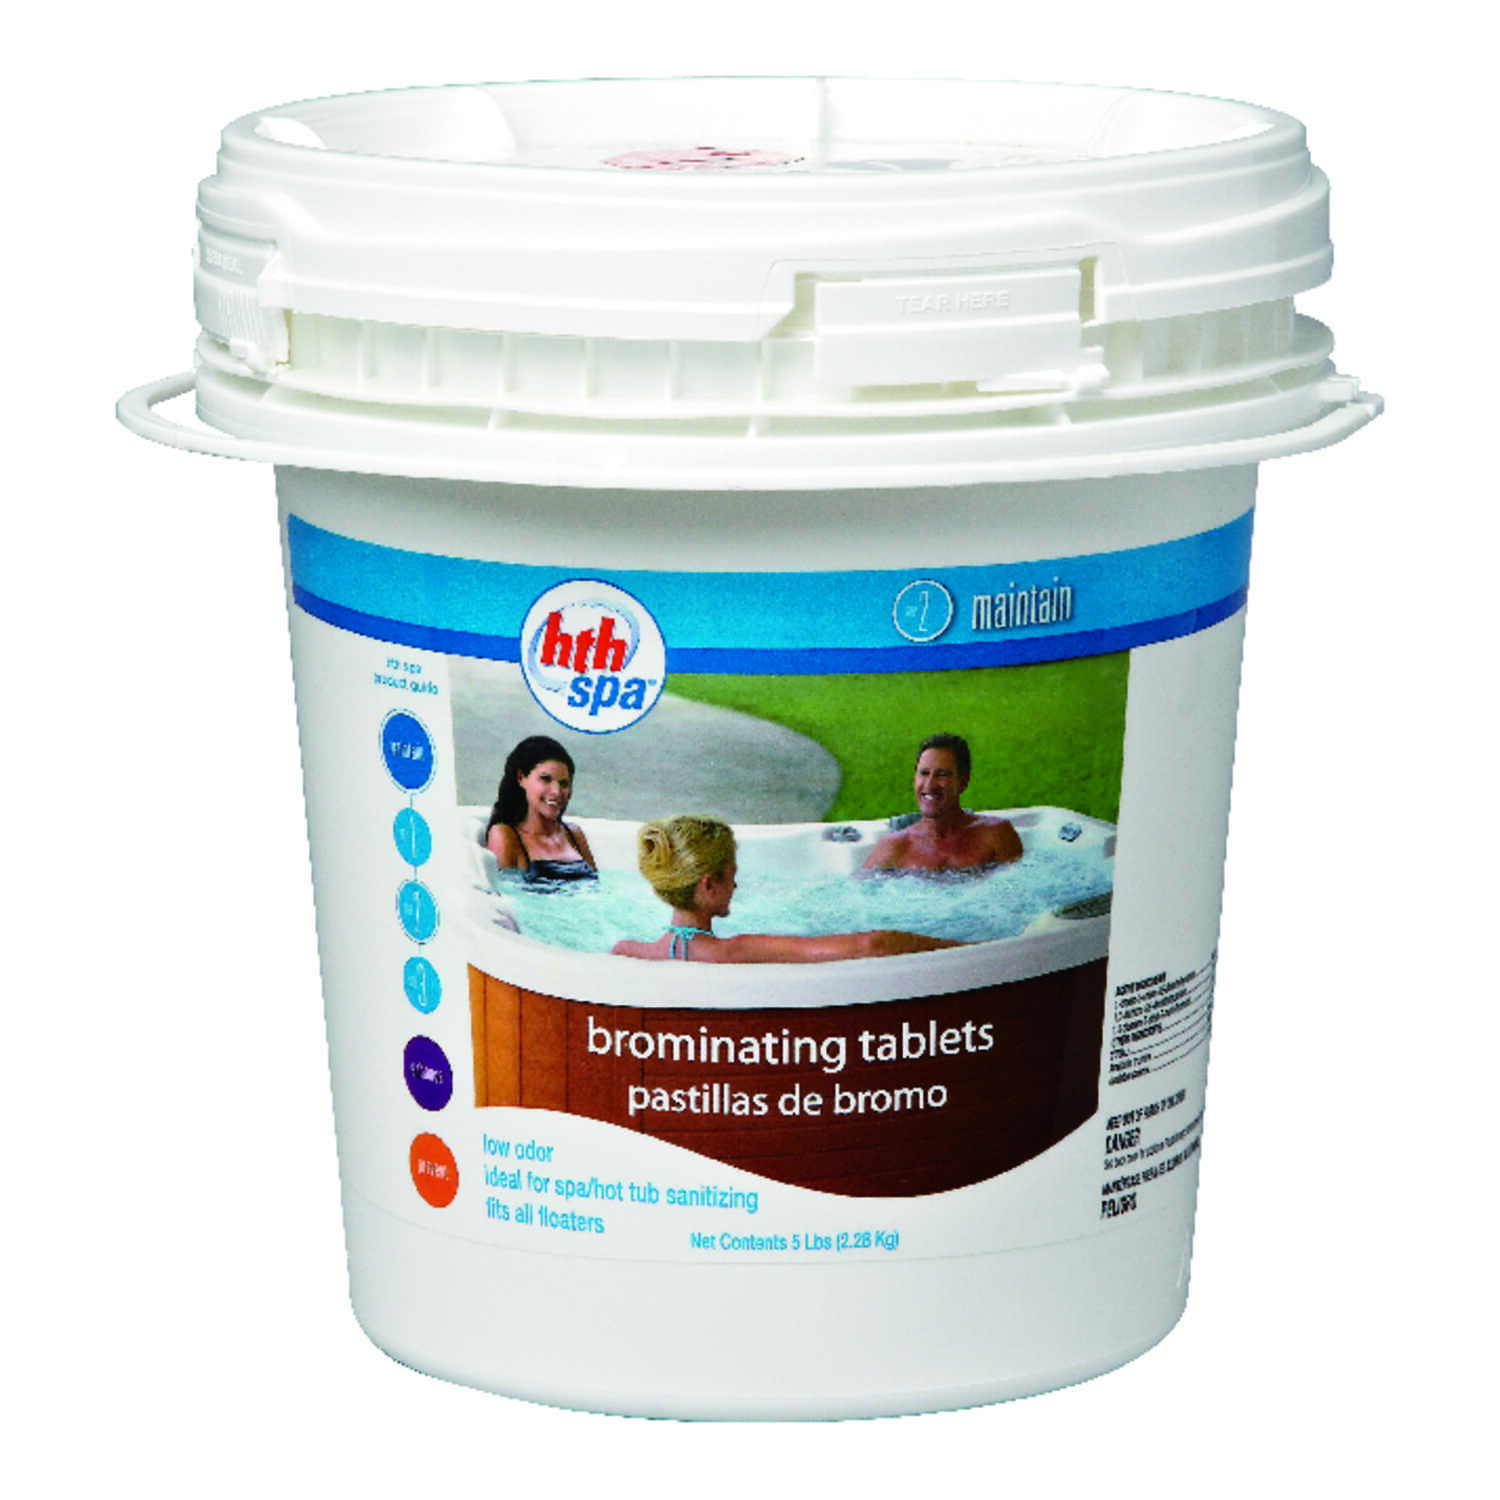 hth  Spa  Brominating Chemicals  5 lb.